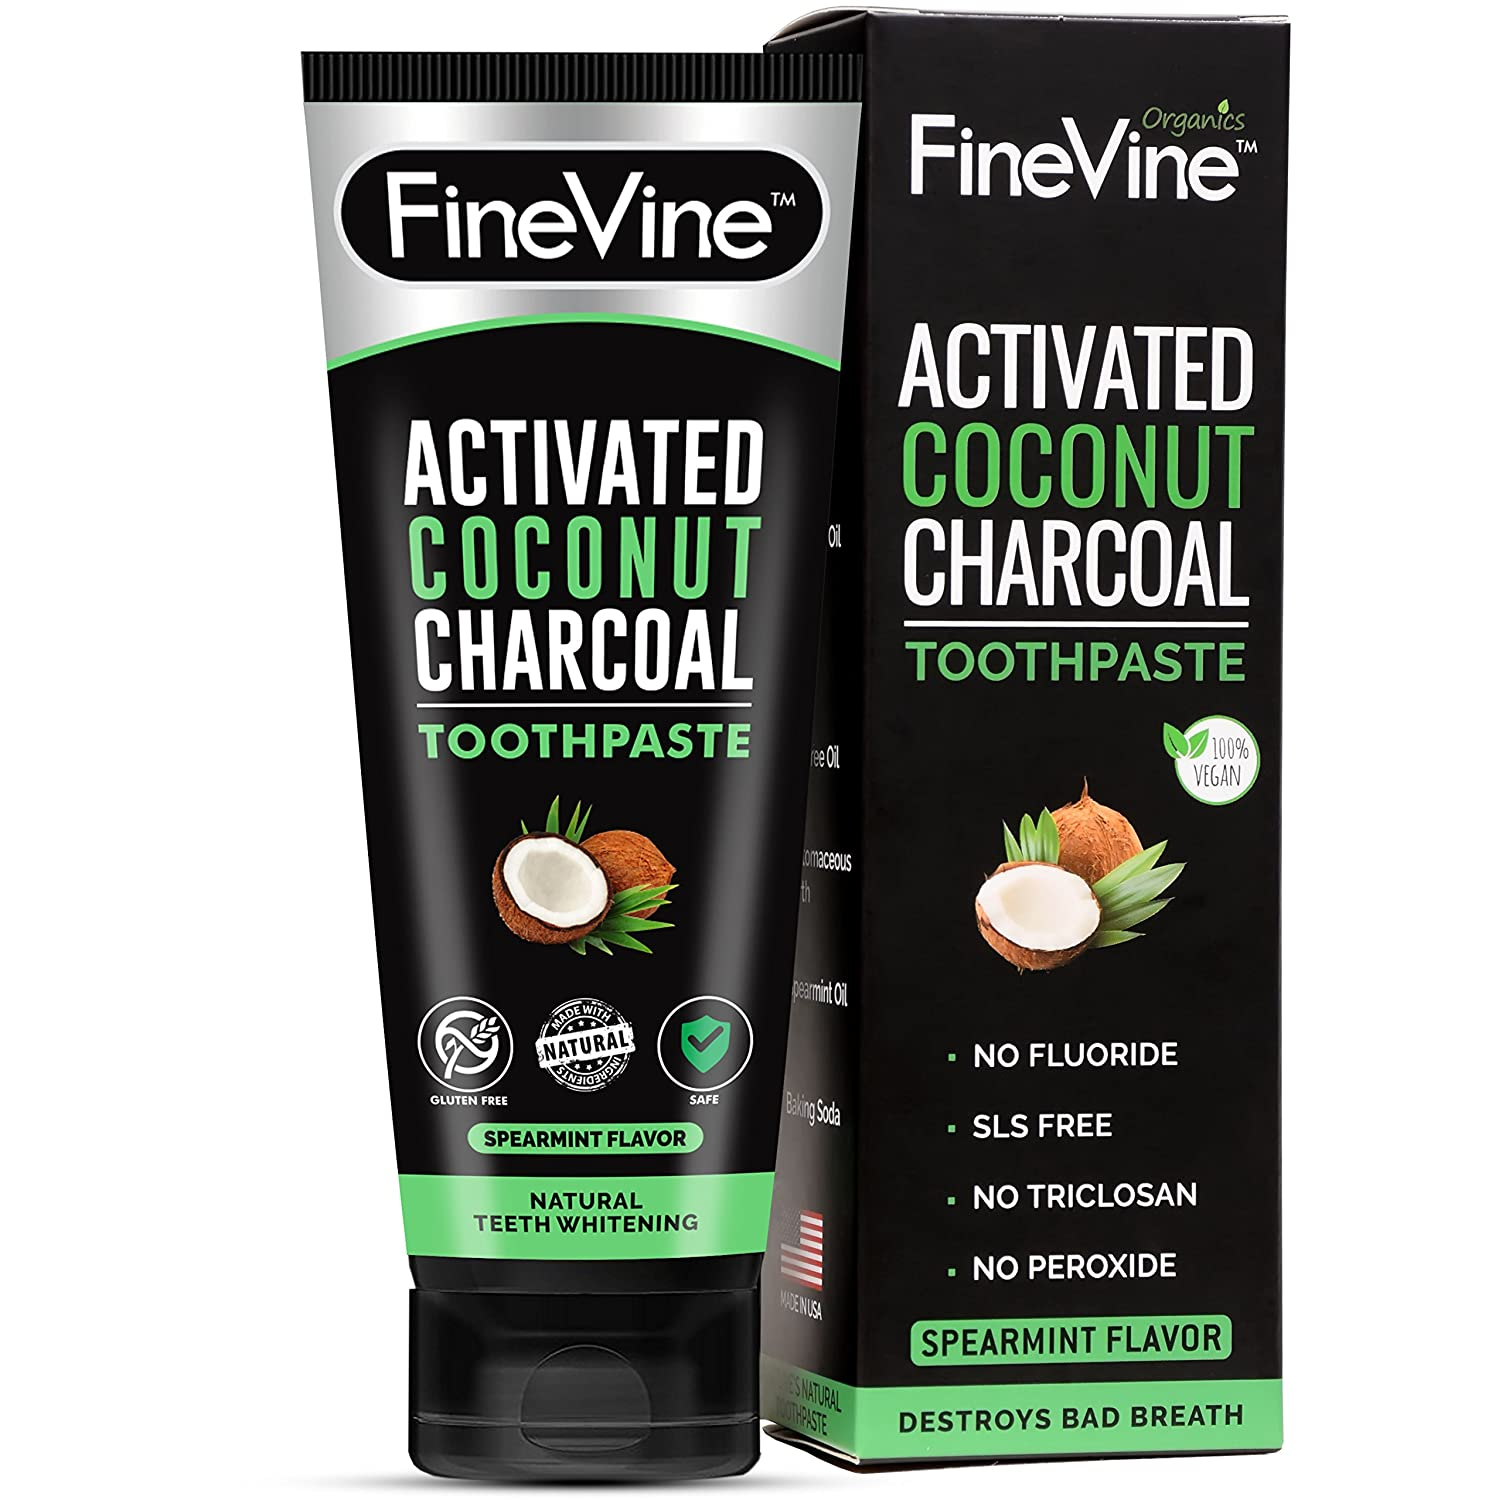 100% Natural Charcoal Teeth Whitening Toothpaste by FineVine